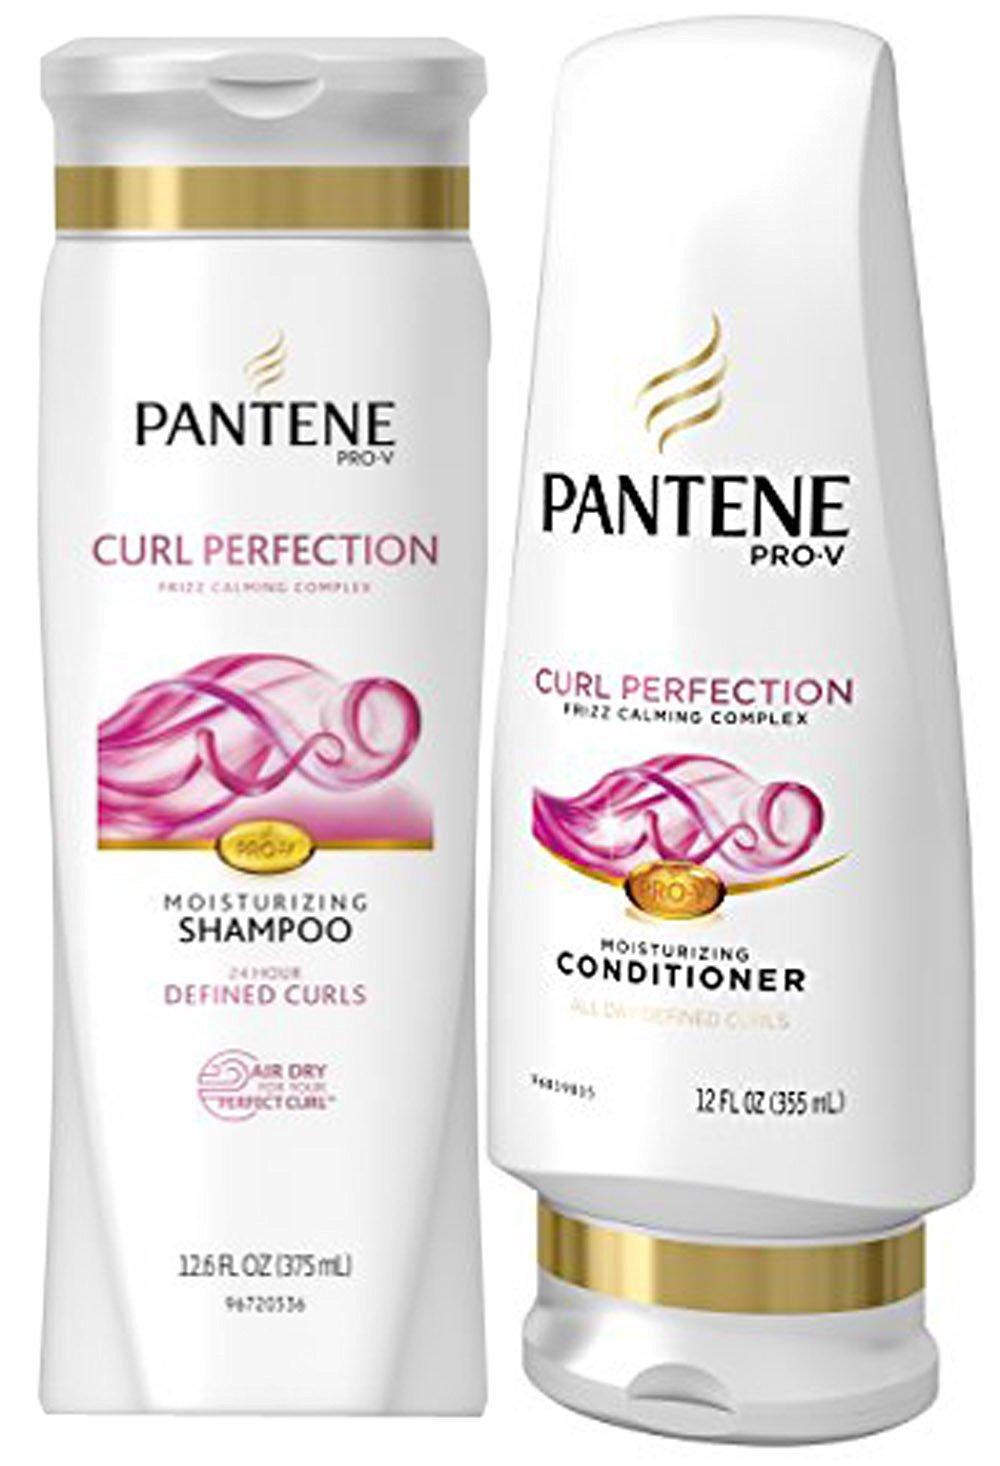 Pantene Pro-V Curl Perfection, Shampoo & Conditioner Set, 12.6 Fl Oz Each